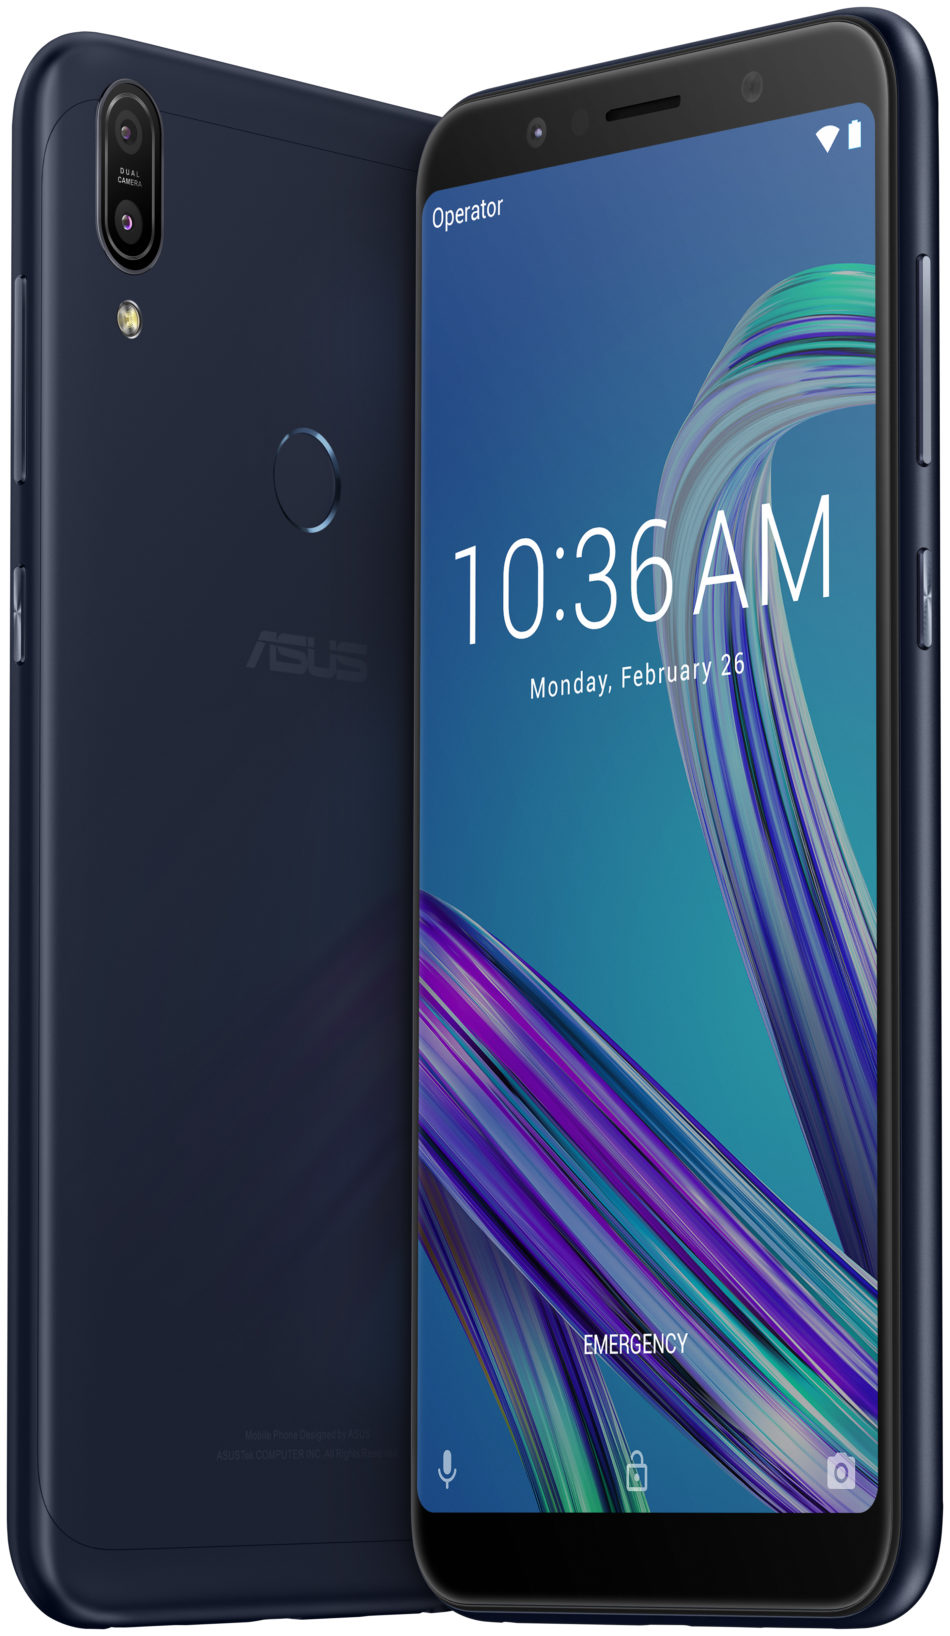 Hands On Asus Zenfone Max Pro M1 Promises To Last The Distance With Ram 3gb Gallery